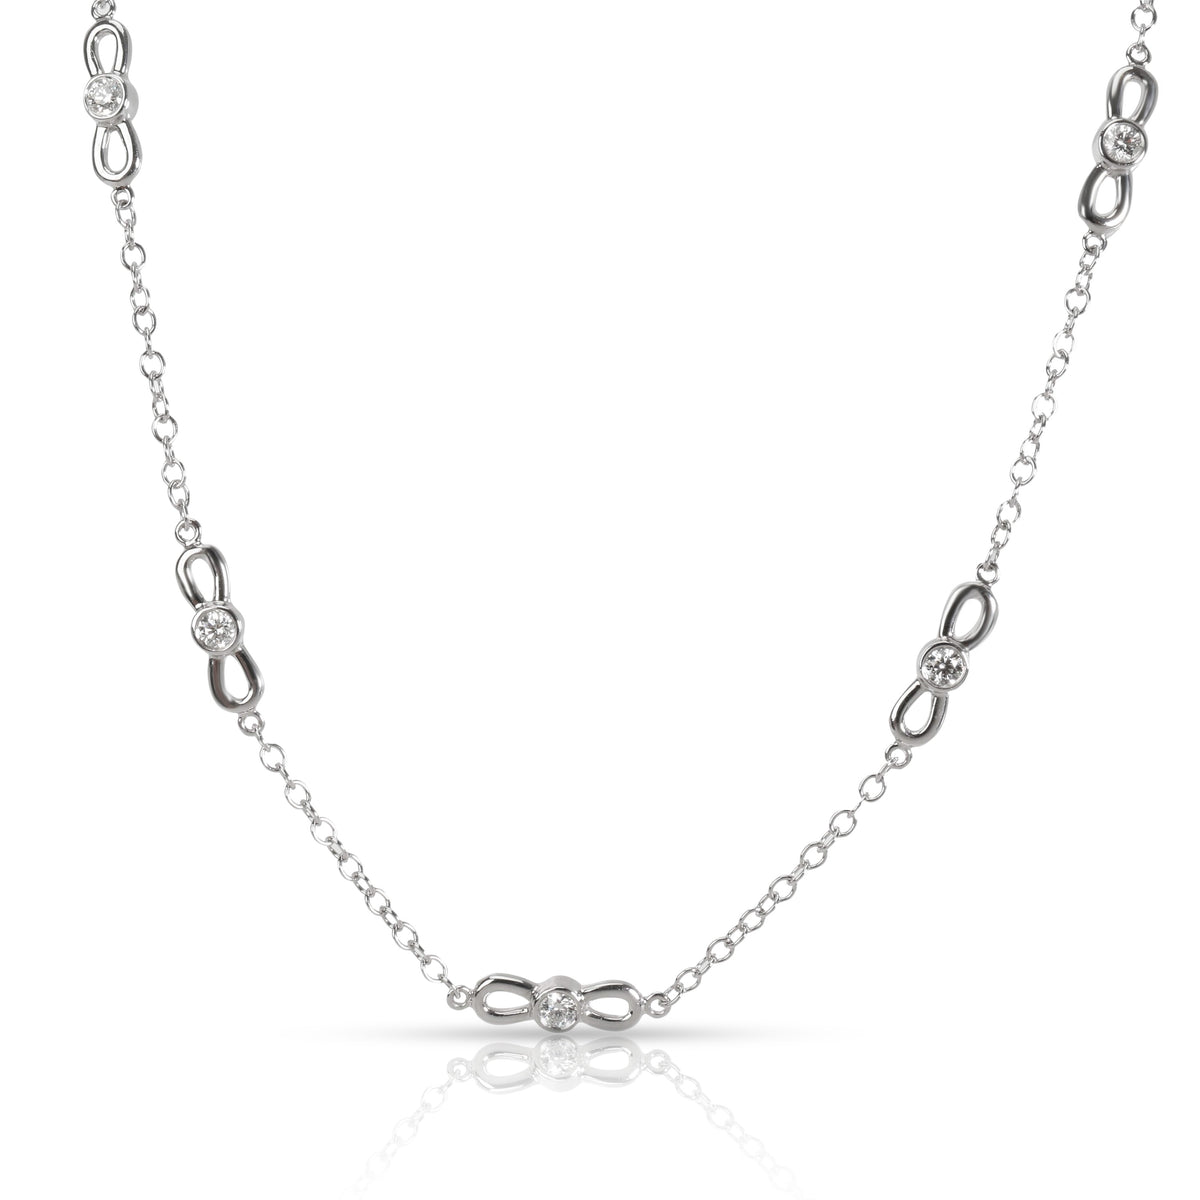 Tiffany & Co. Winged Station Diamond Necklace in 18K White Gold 0.7 CTW